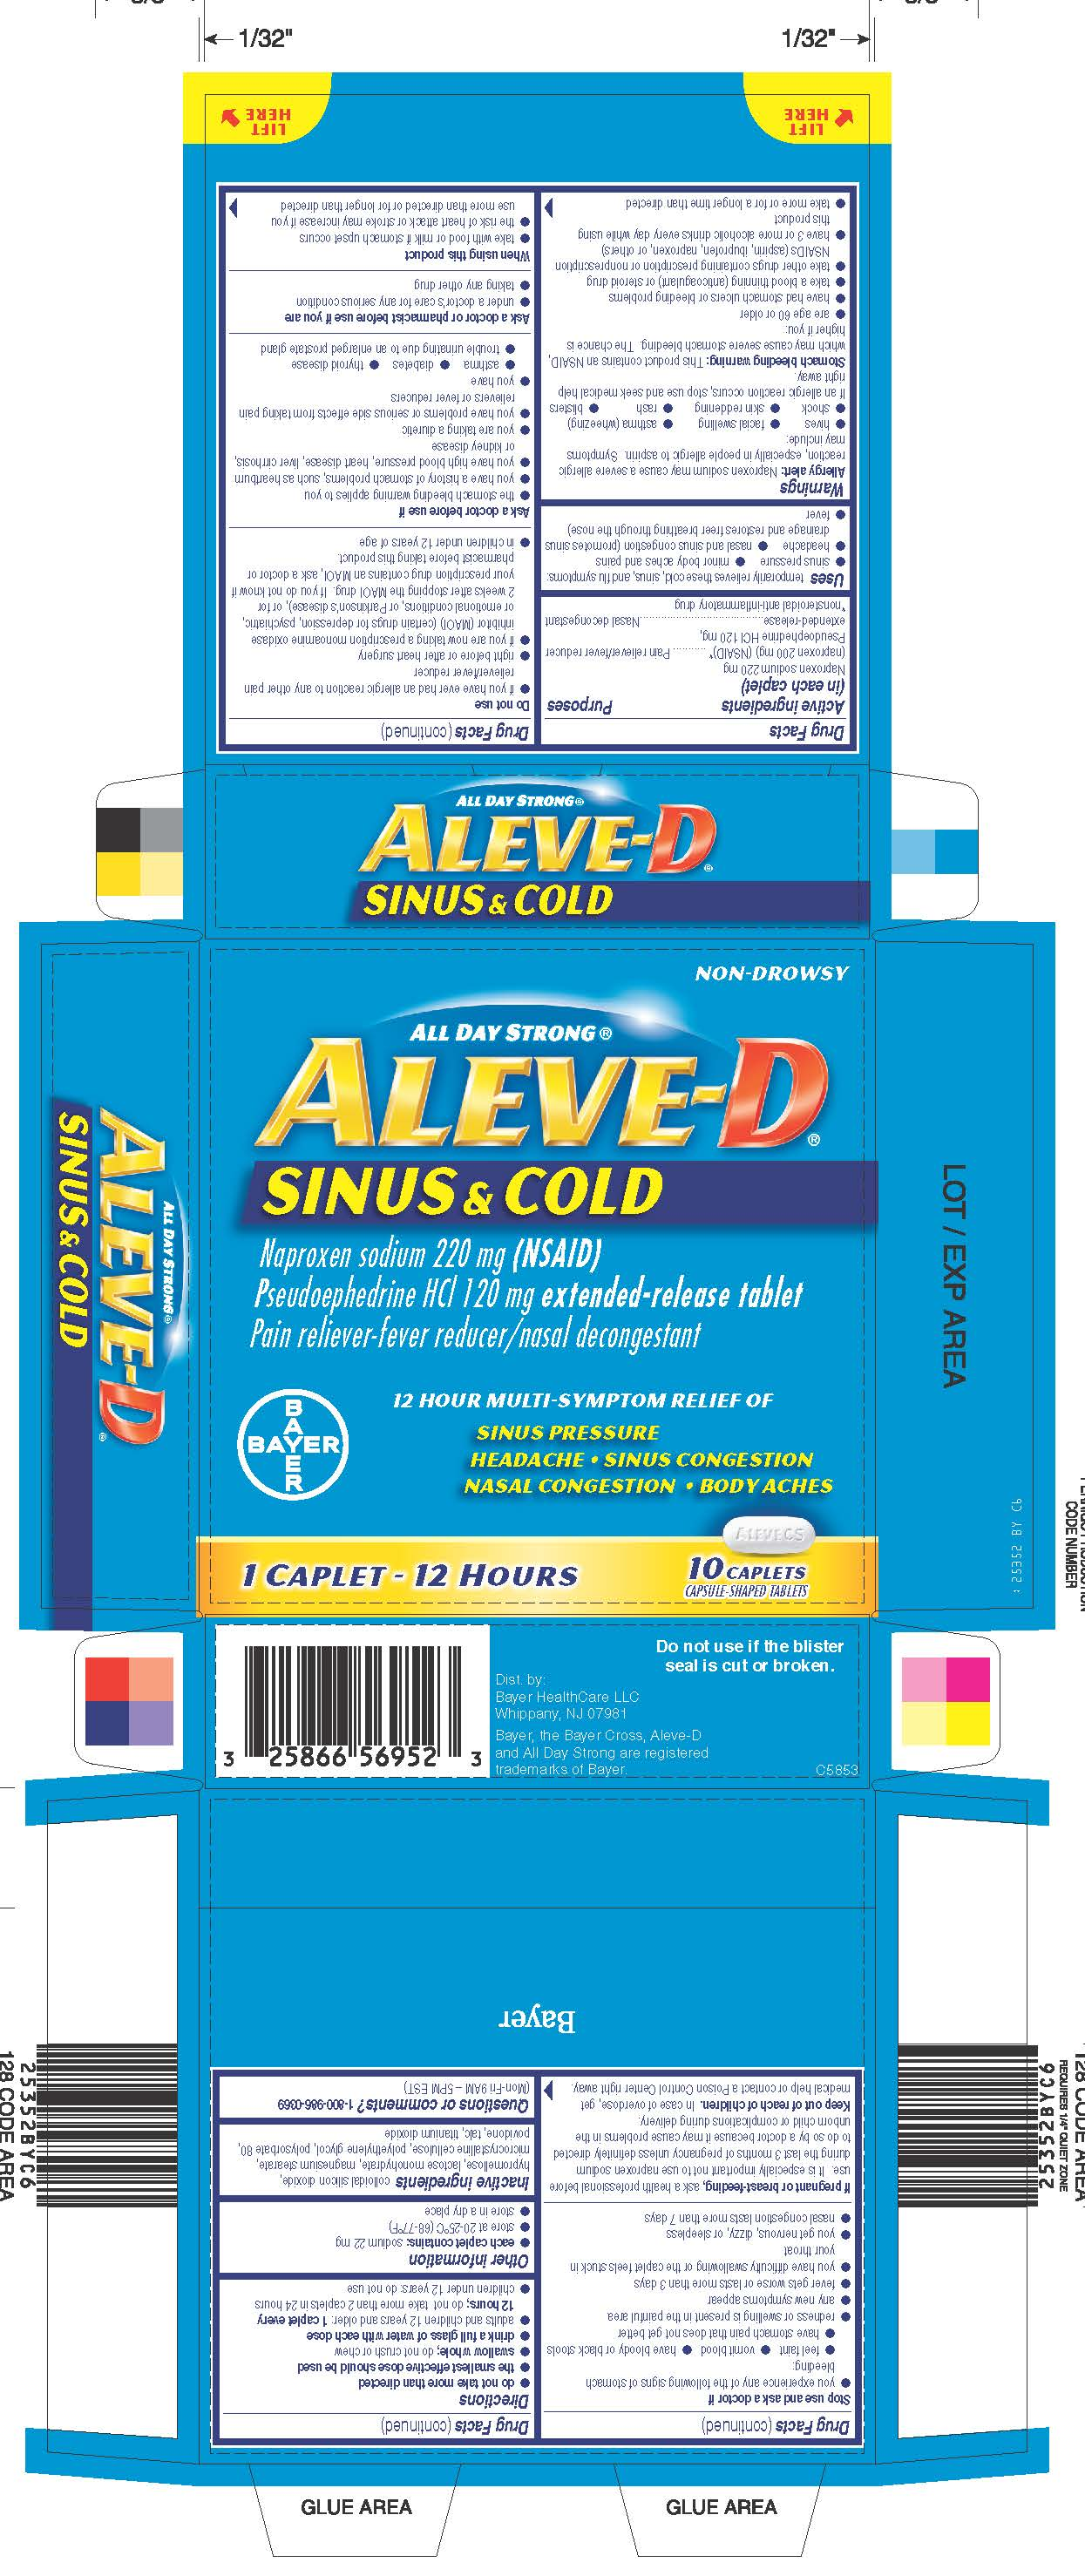 Aleve-D Sinus and Cold (tablet) Bayer HealthCare LLC.